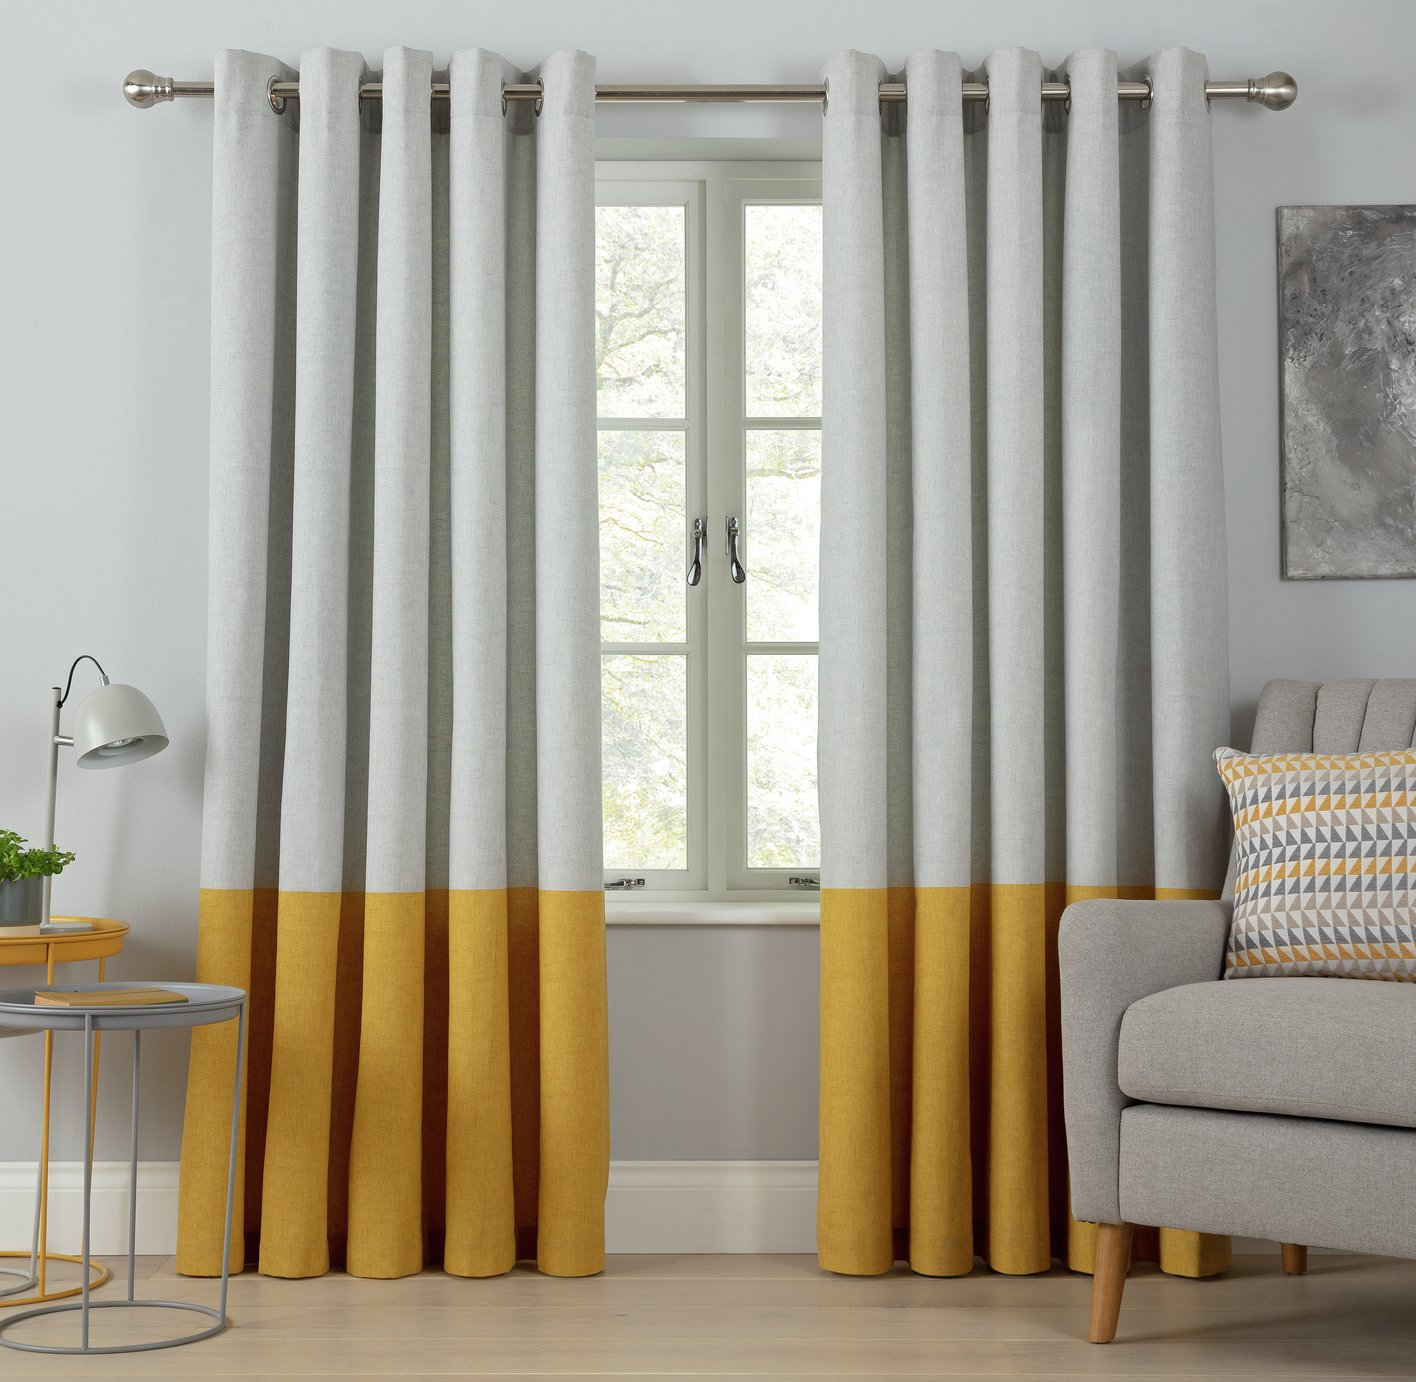 Argos Home Printed Border Unlined Eyelet Curtains - Mustard